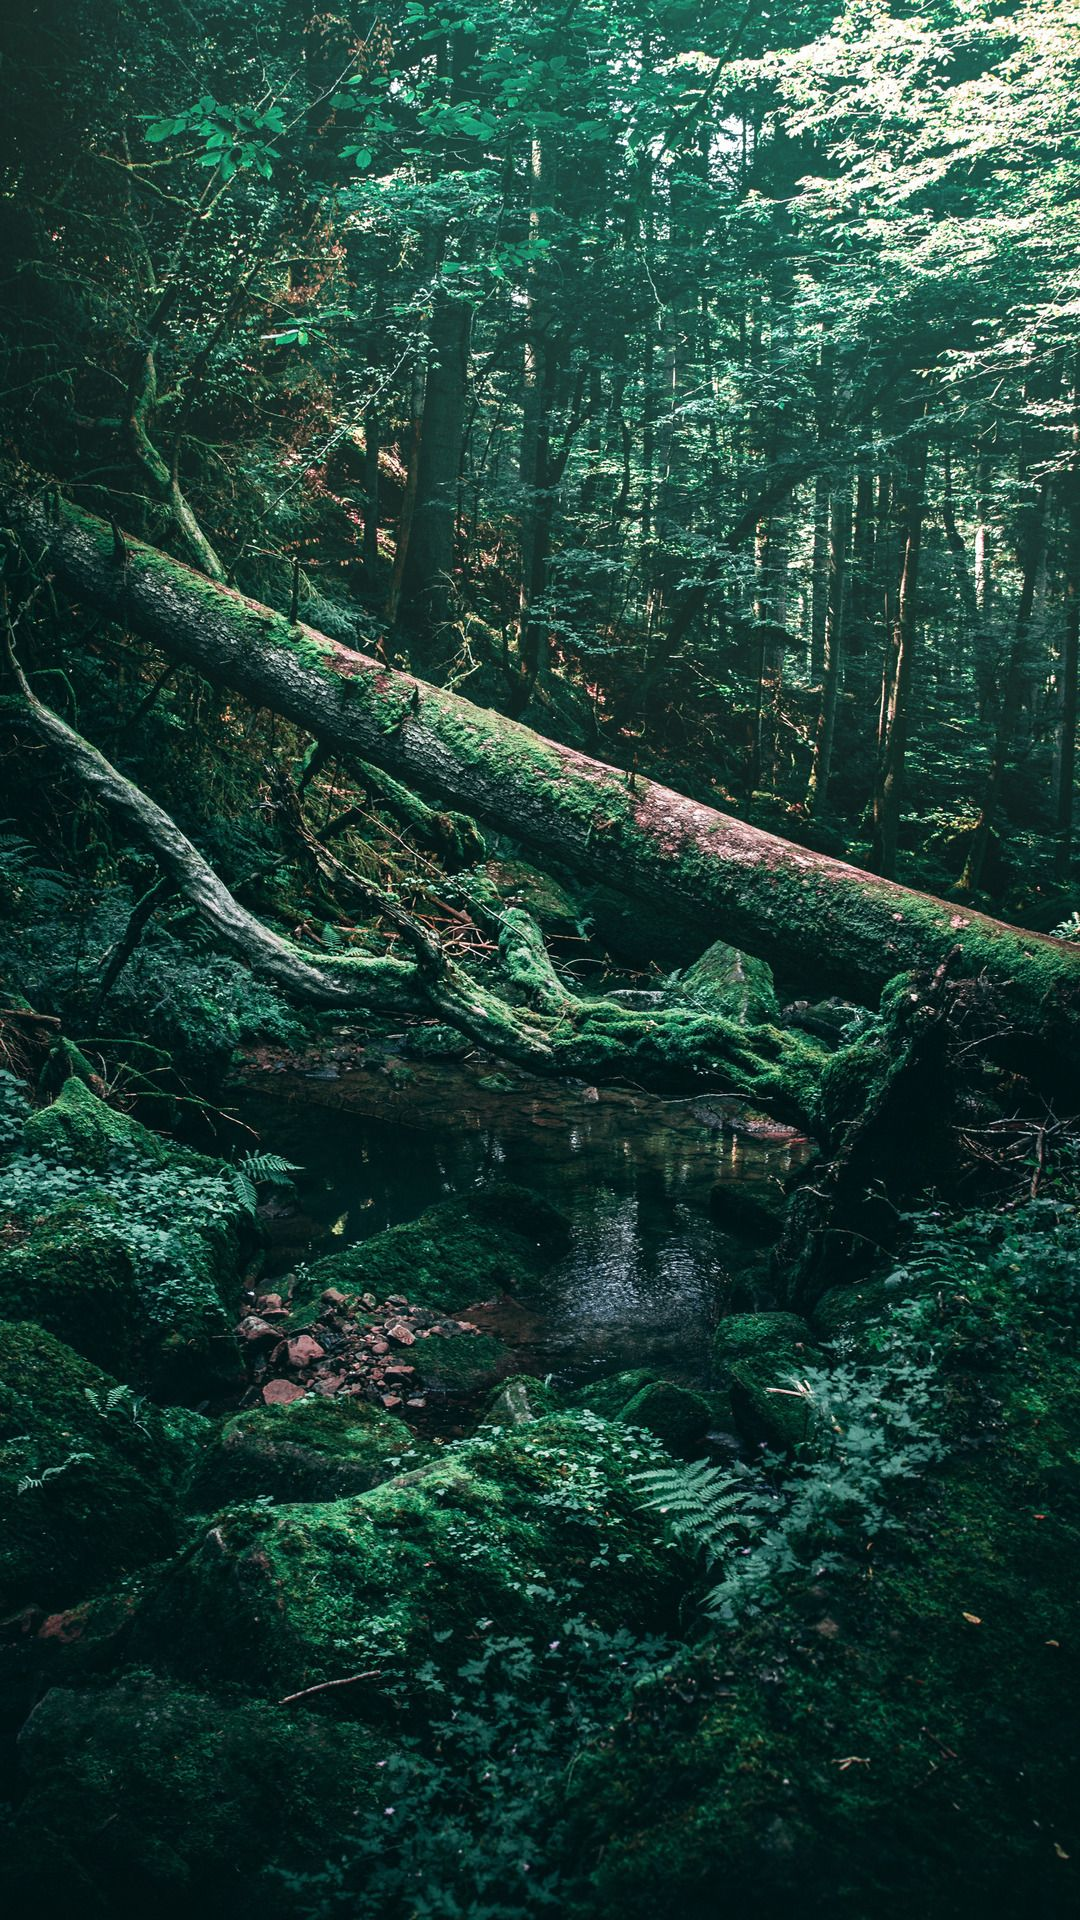 Tree, Forest, Oldgrowth Forest, Nature, Green, Vegetation